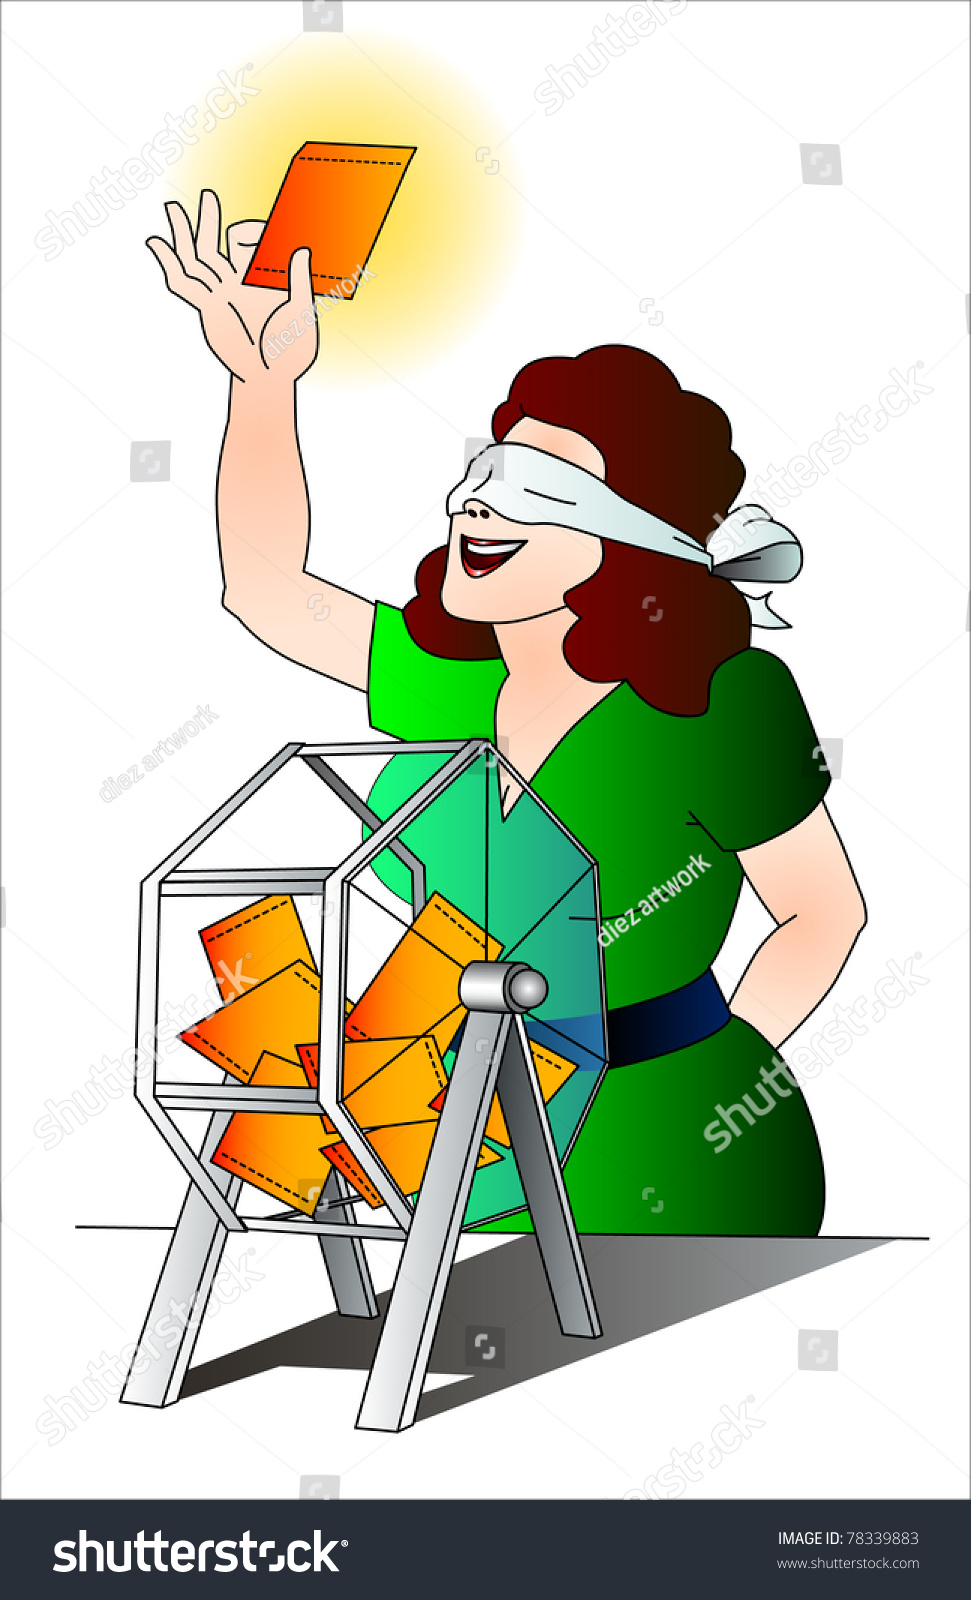 How To Have Good Luck tombola pick winner have good luck stock vector 78339883